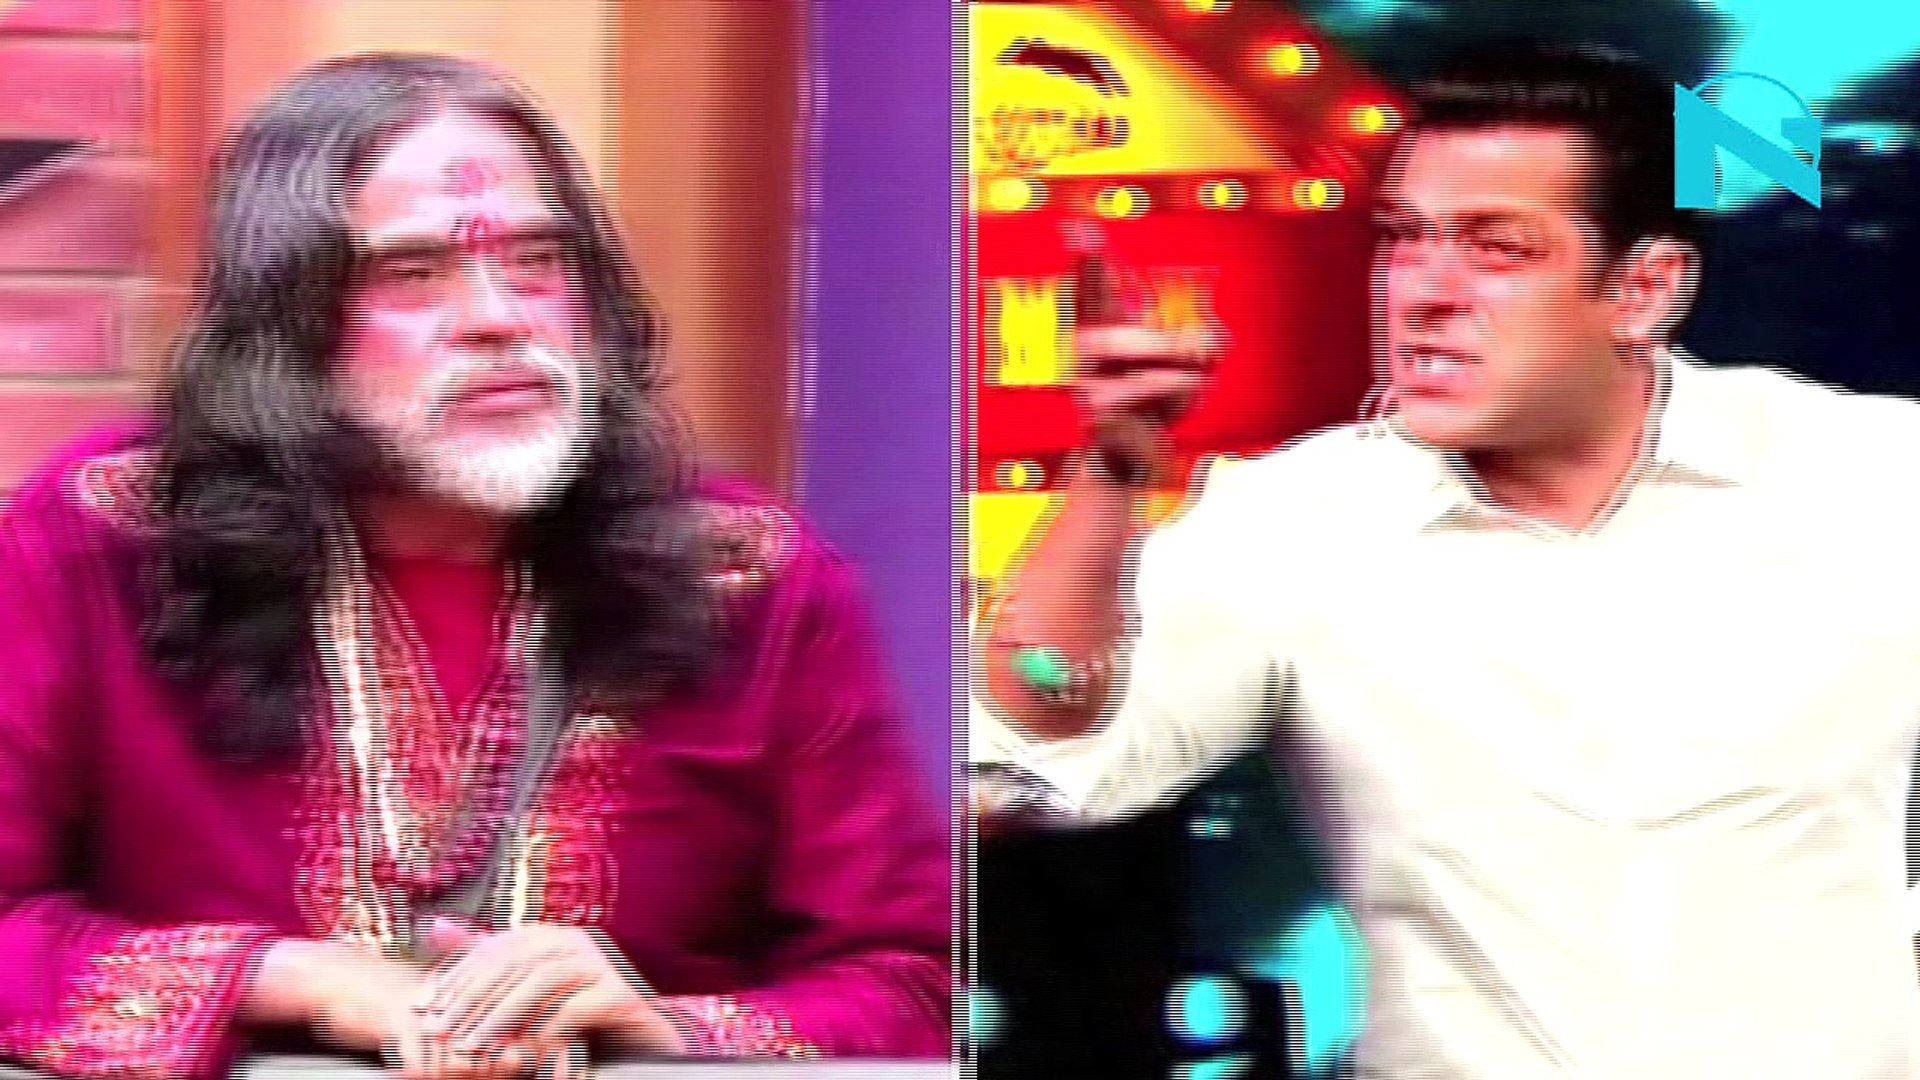 CONFIRMED! Swami Om is attending Bigg Boss 10 finale!